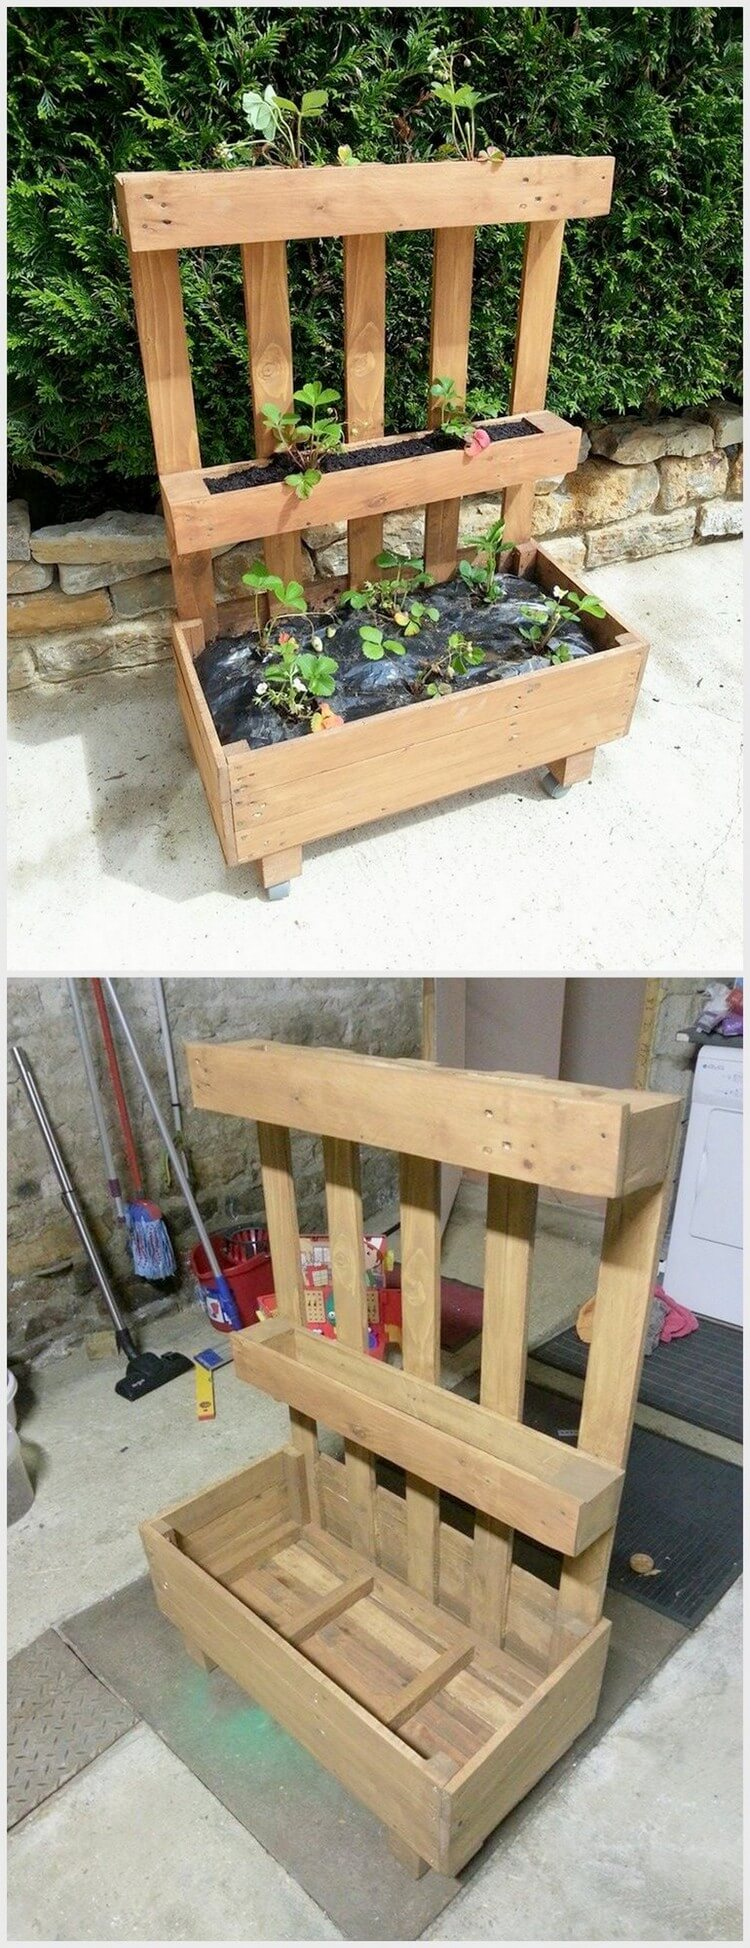 25 DIY Recycled Wooden Pallet Projects Try out at Home ...